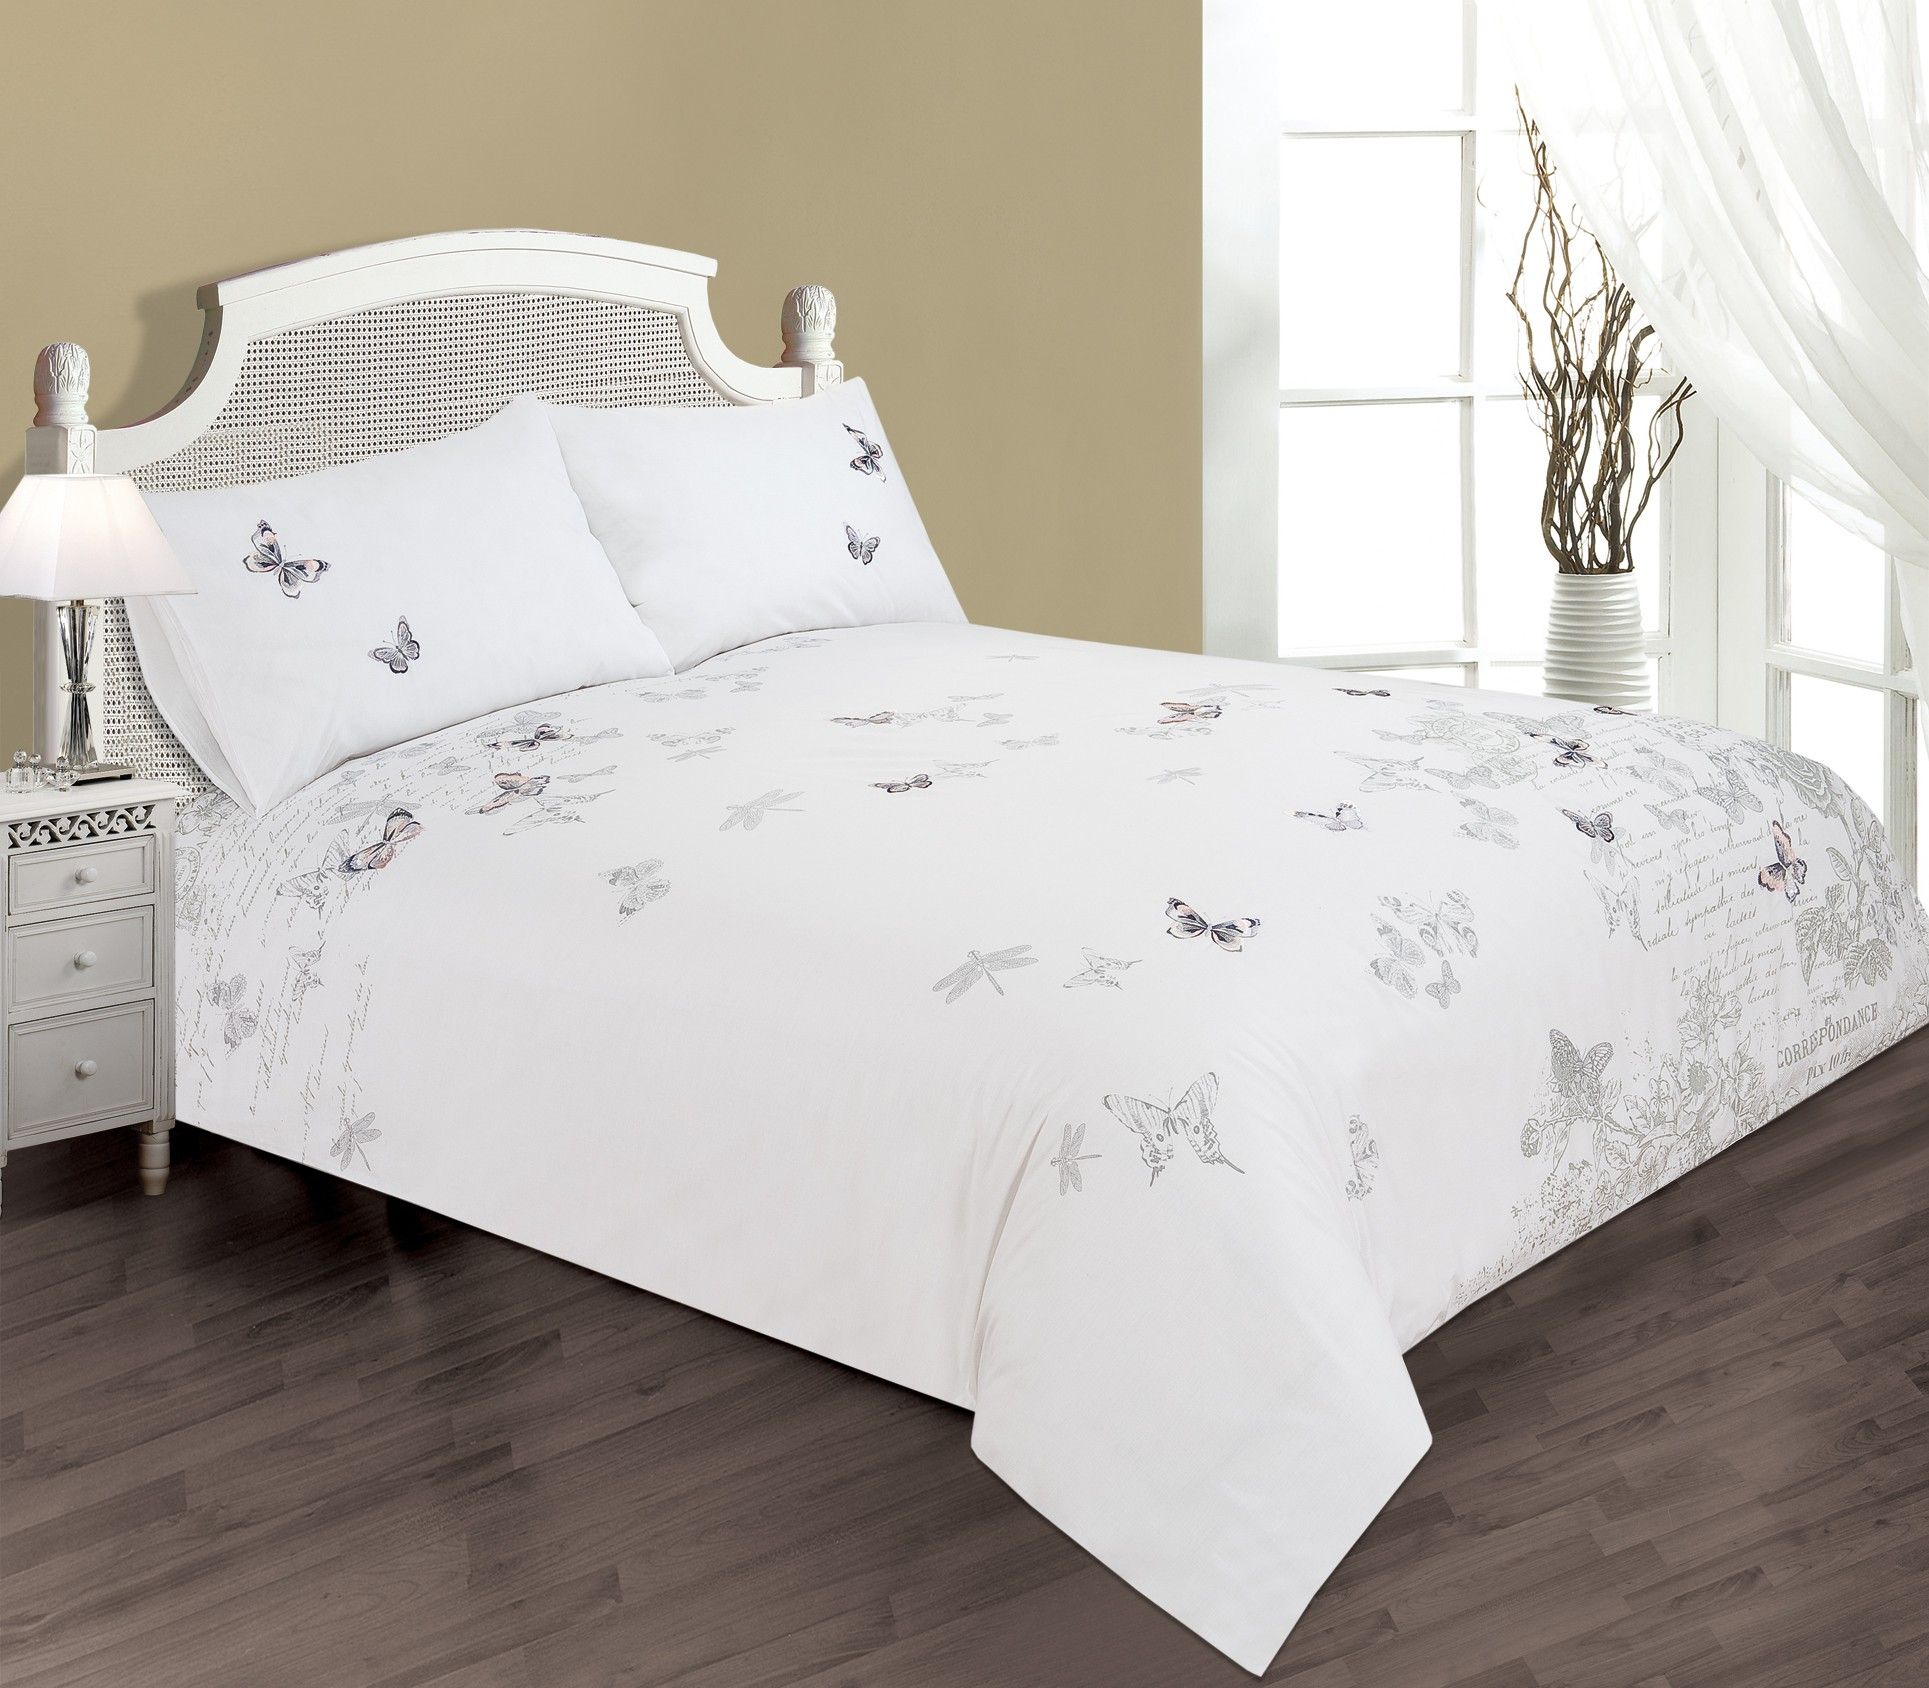 Life From Coloroll Postcard Embroidered Erfly Duvet Set White Ponden Homes